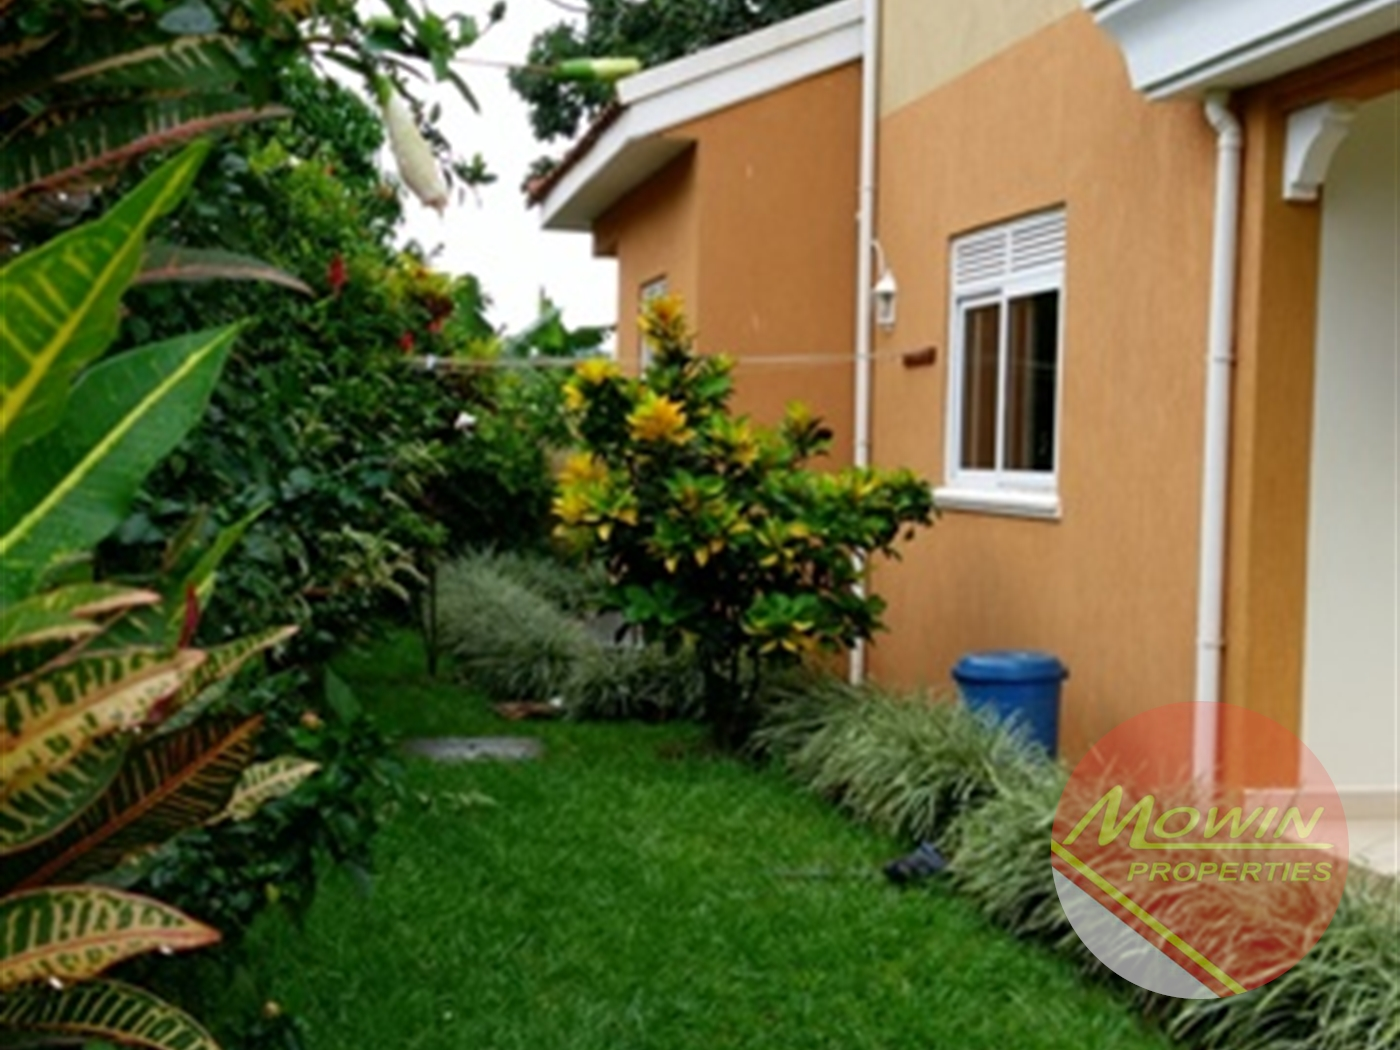 Villa for rent in Munyonyo Kampala